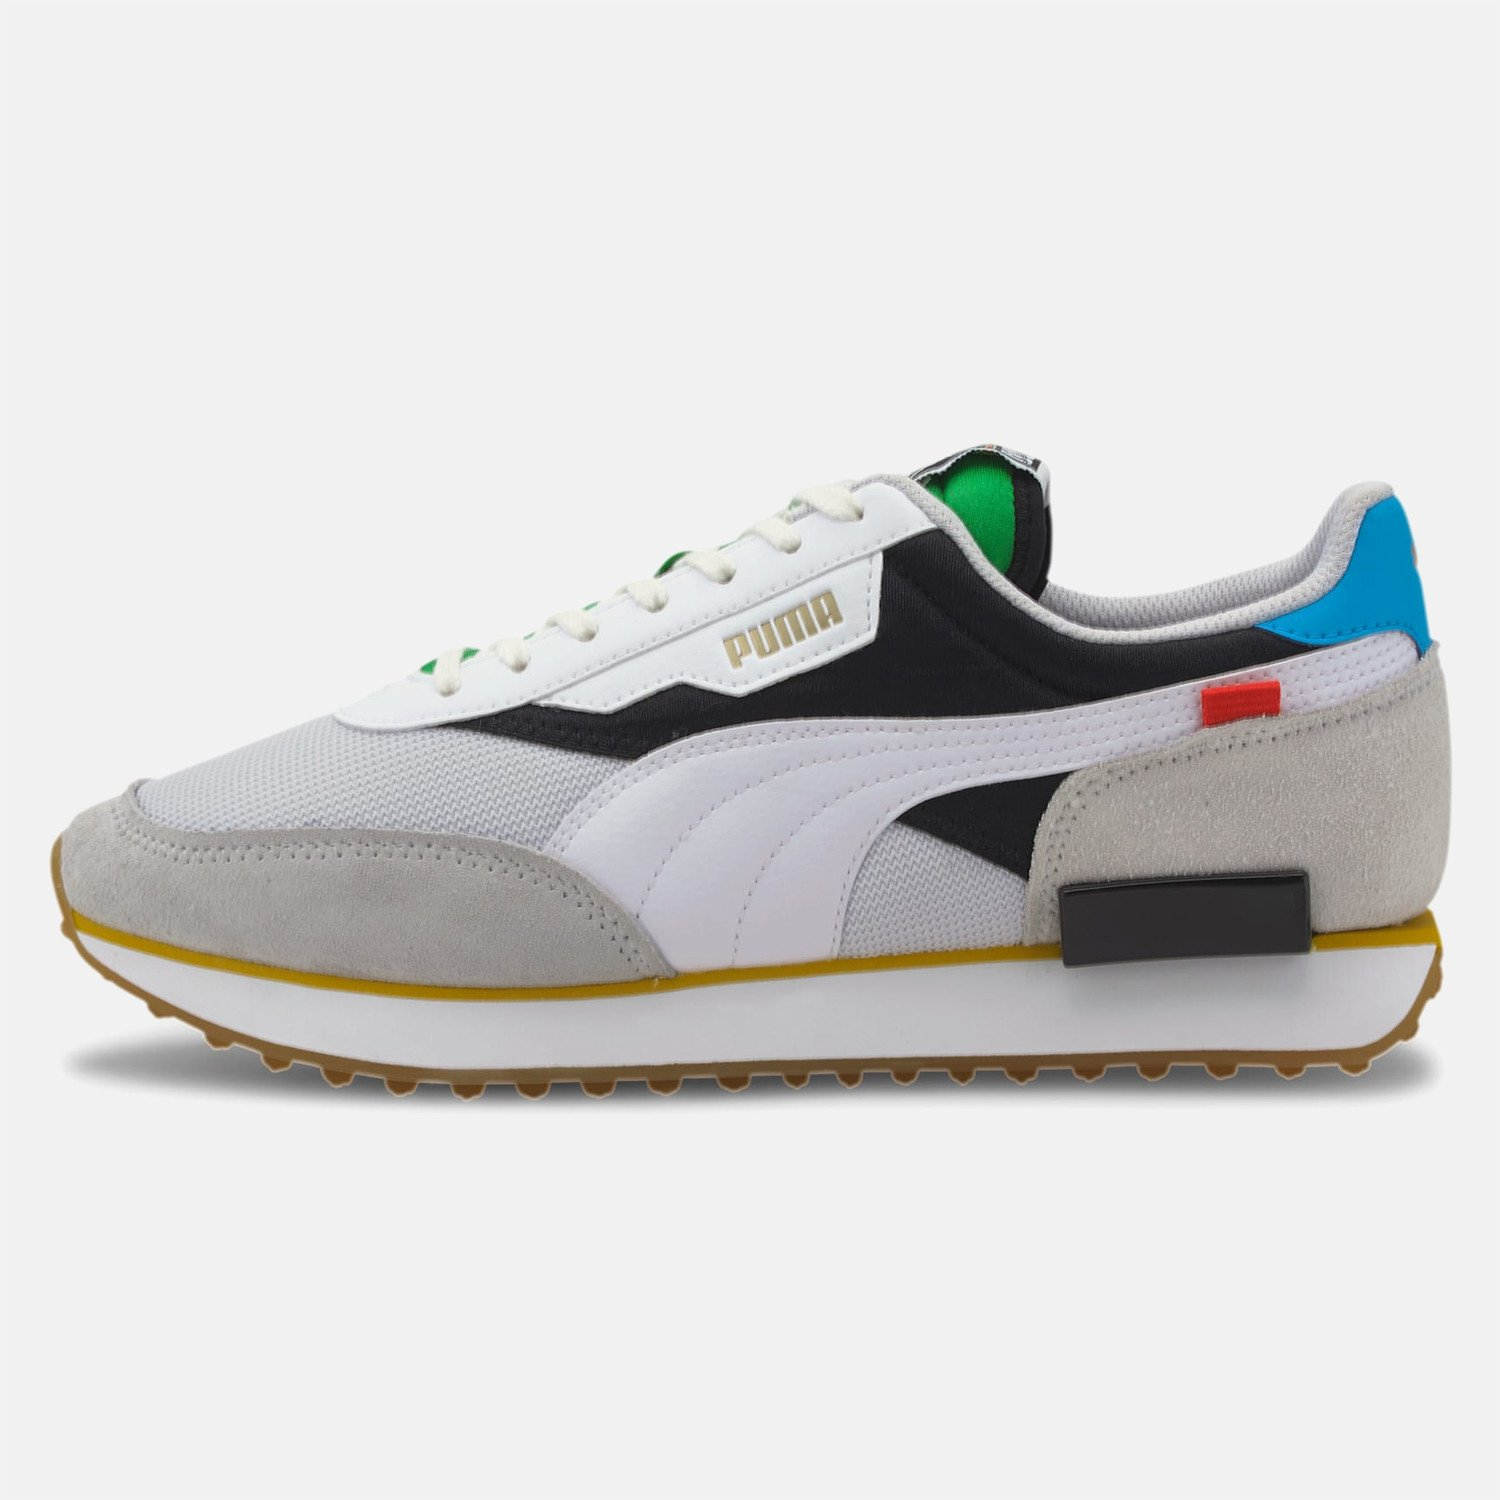 Puma Worldhood Future Rider Unisex Παπούτσια (9000056969_22489)